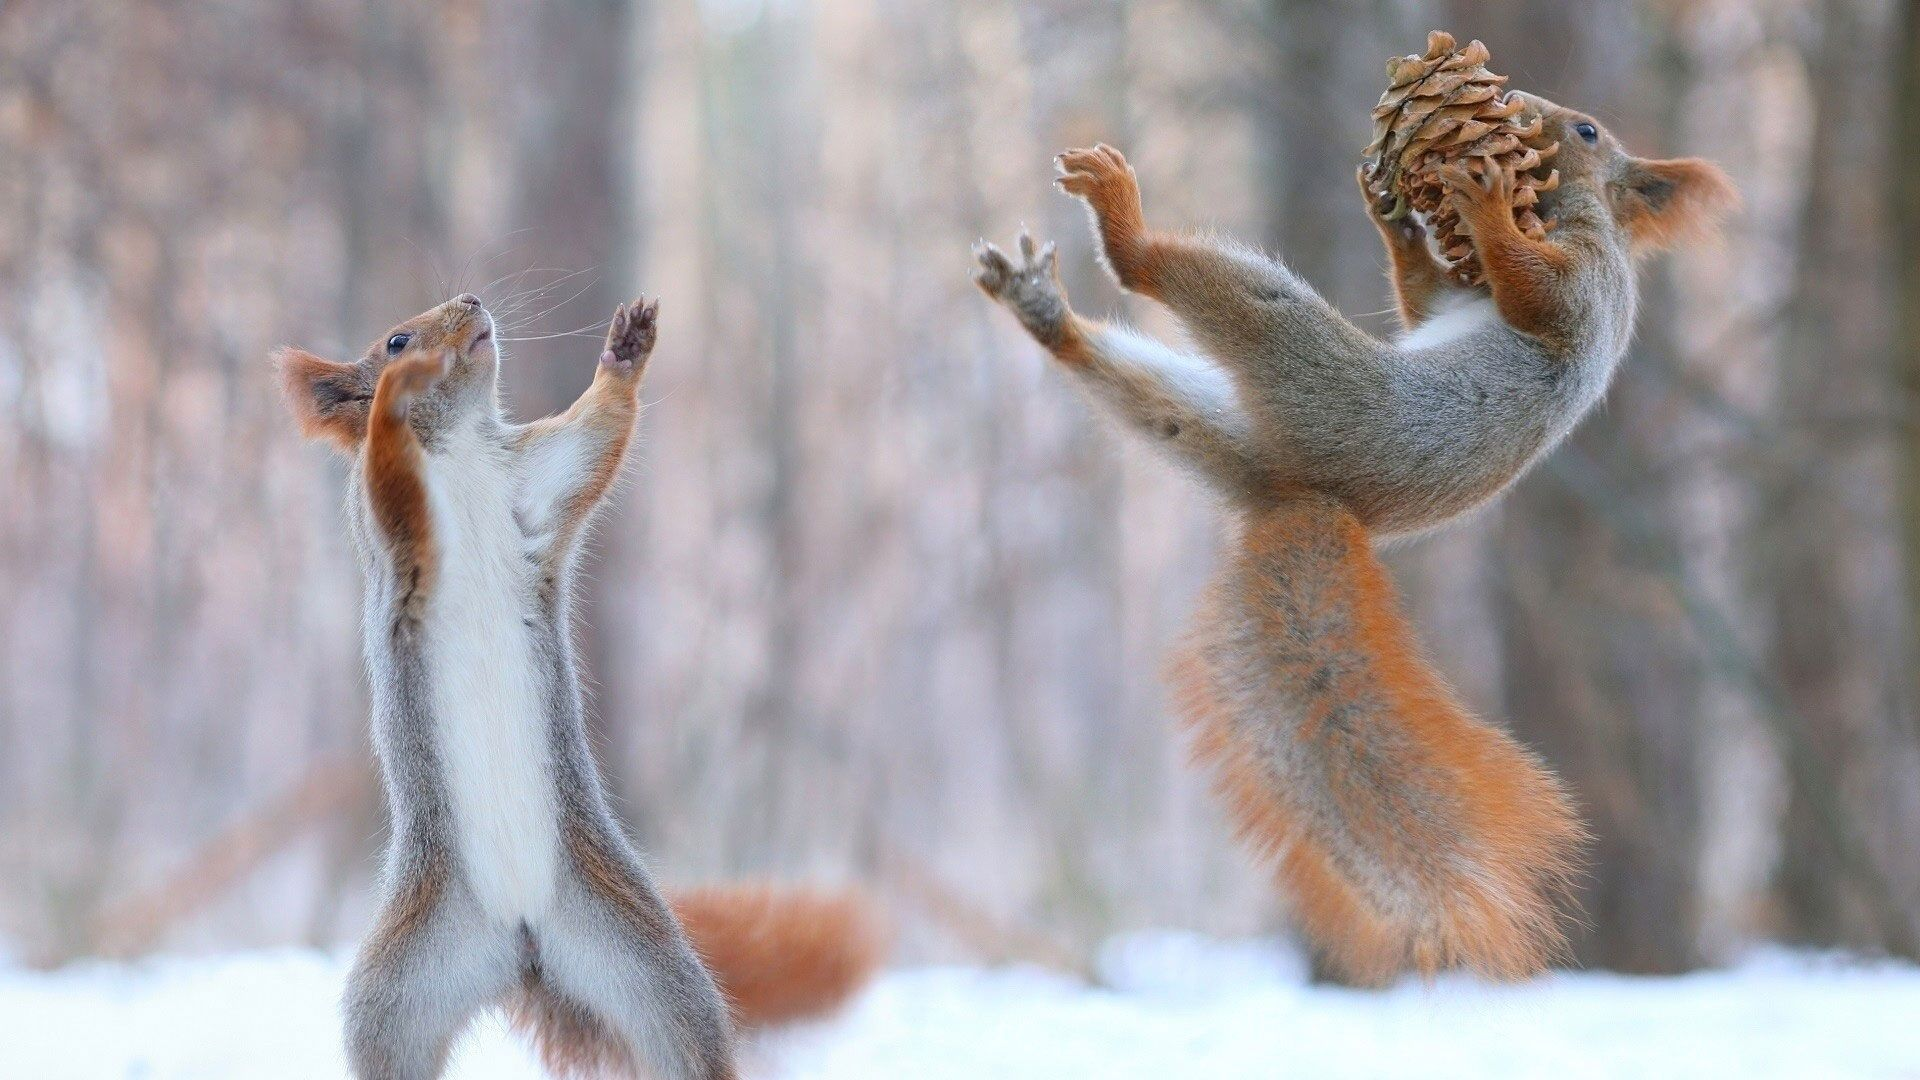 hd pics photos stunning attractive squirrel funny pair best close ...